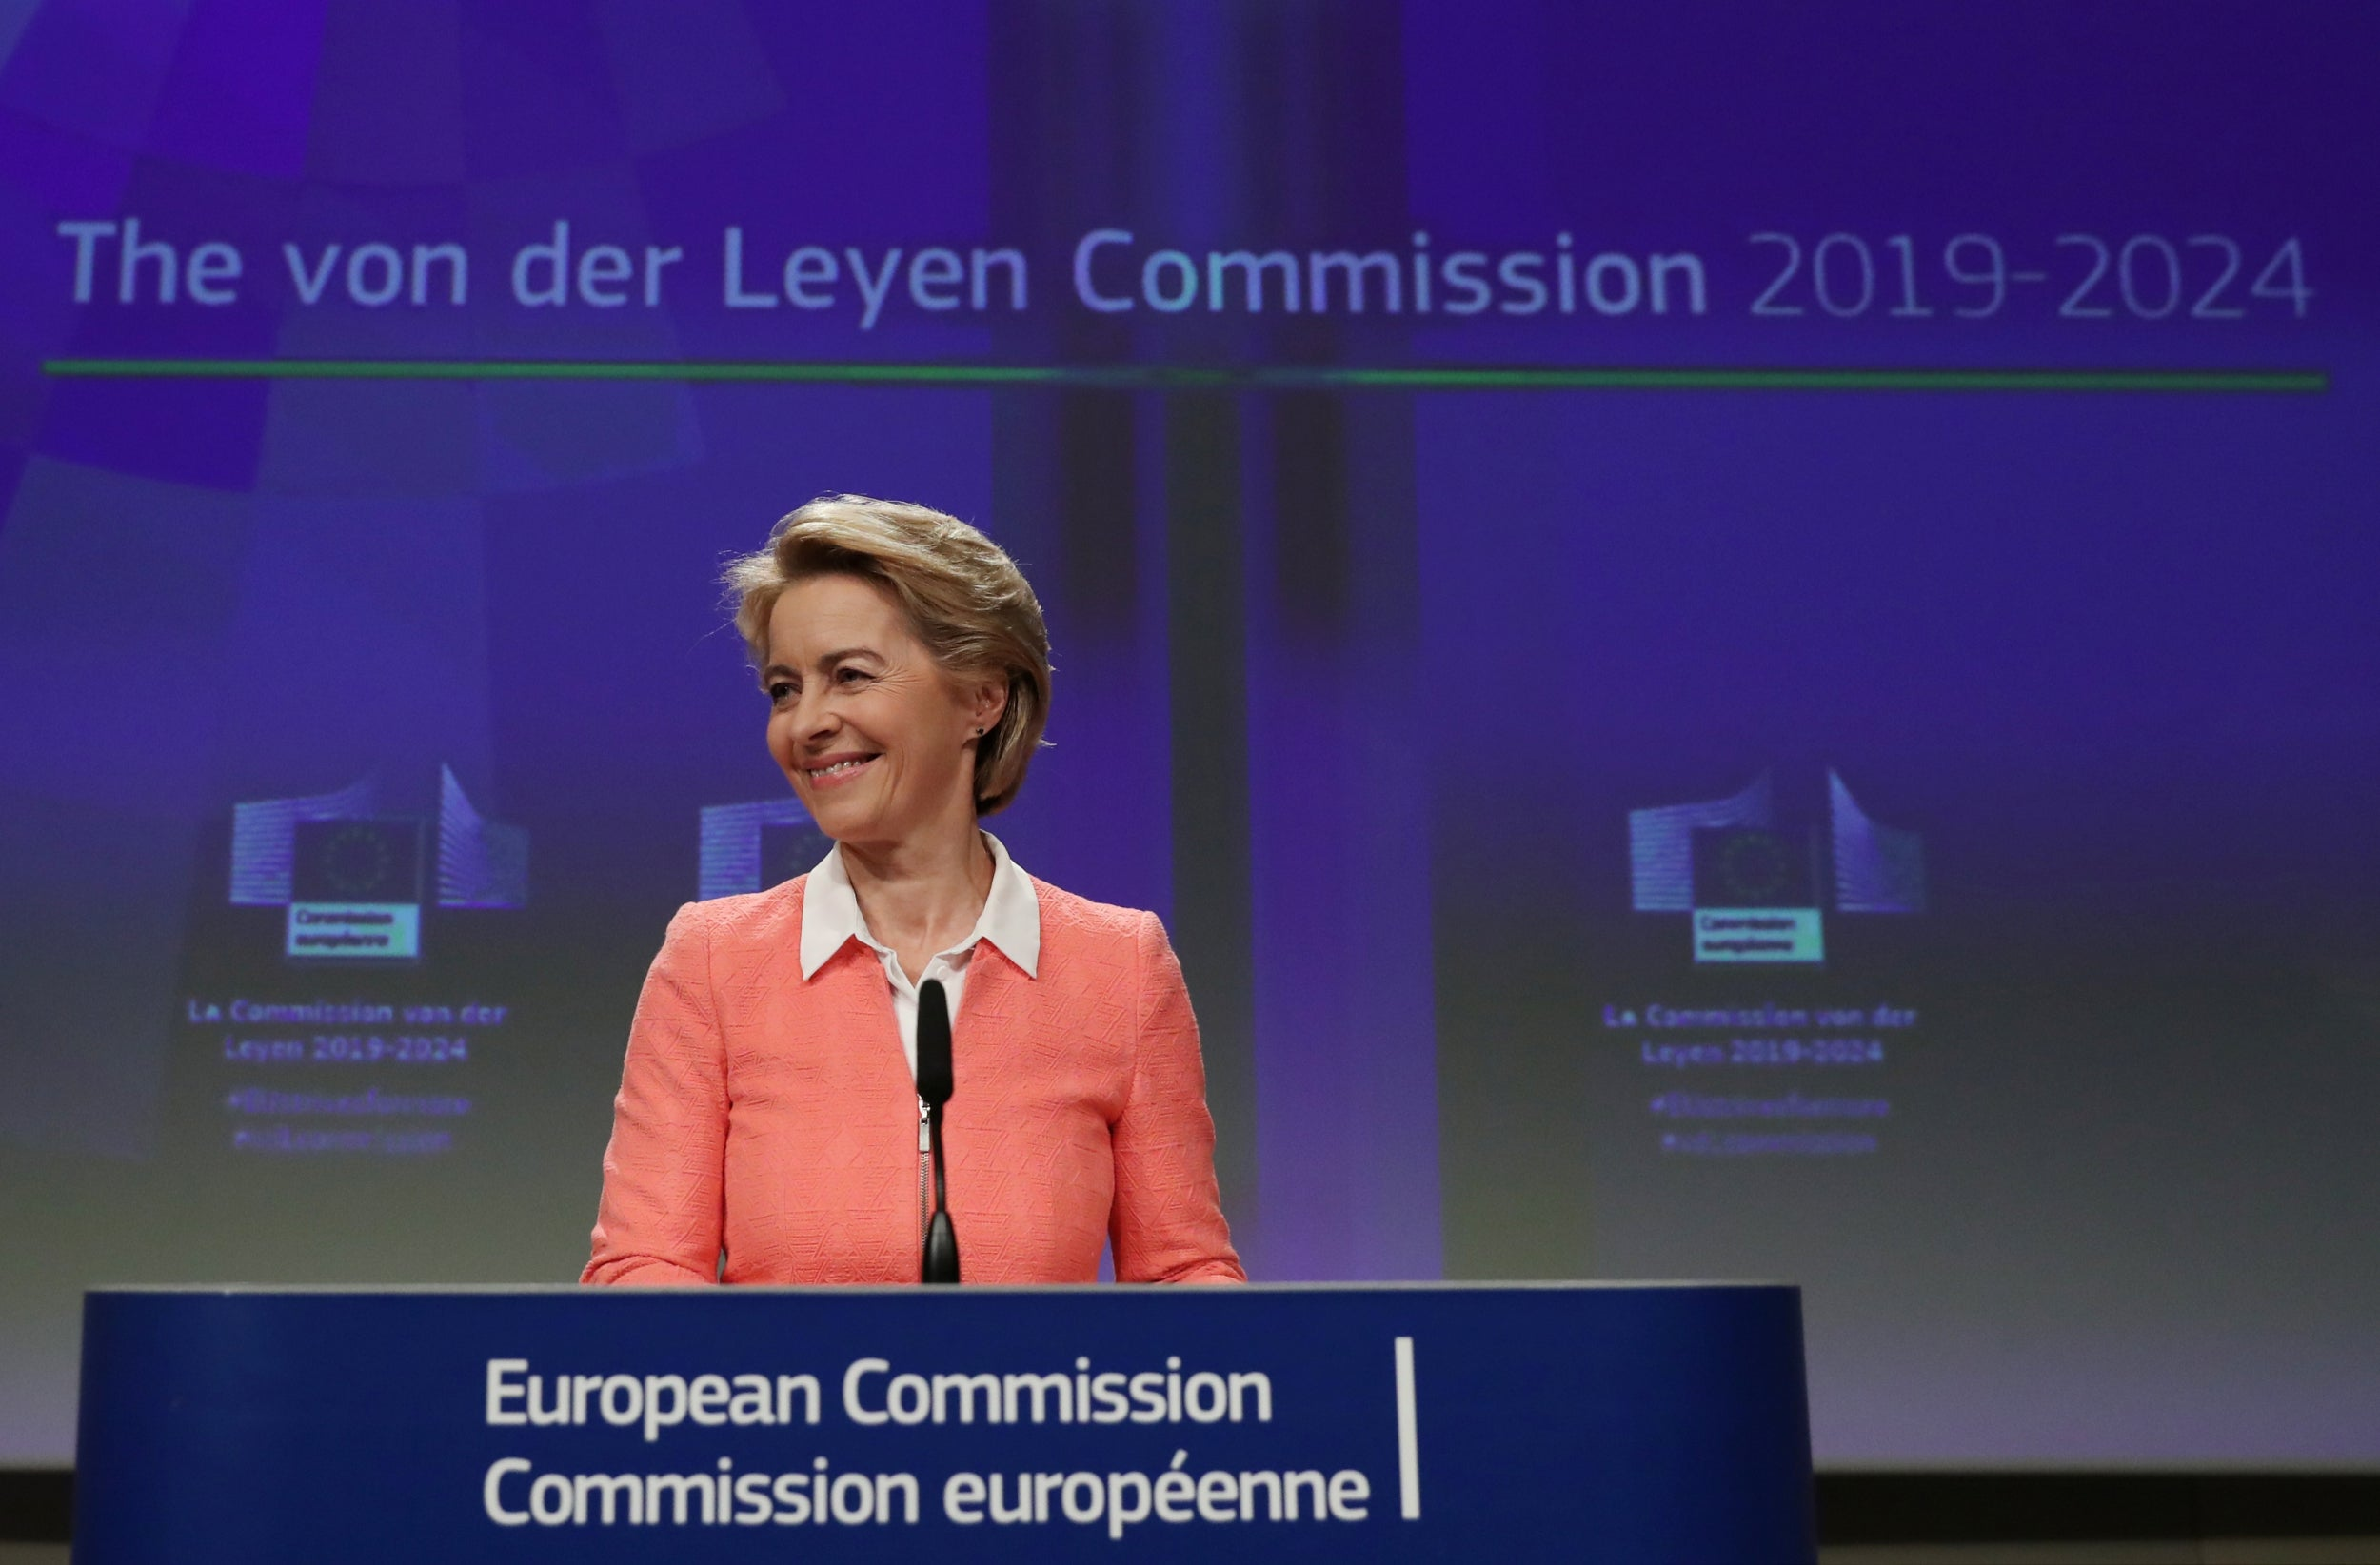 EU accused of adopting 'fascist rhetoric' with new Commissioner For Protecting Our European Way of Life to oversee immigration policy